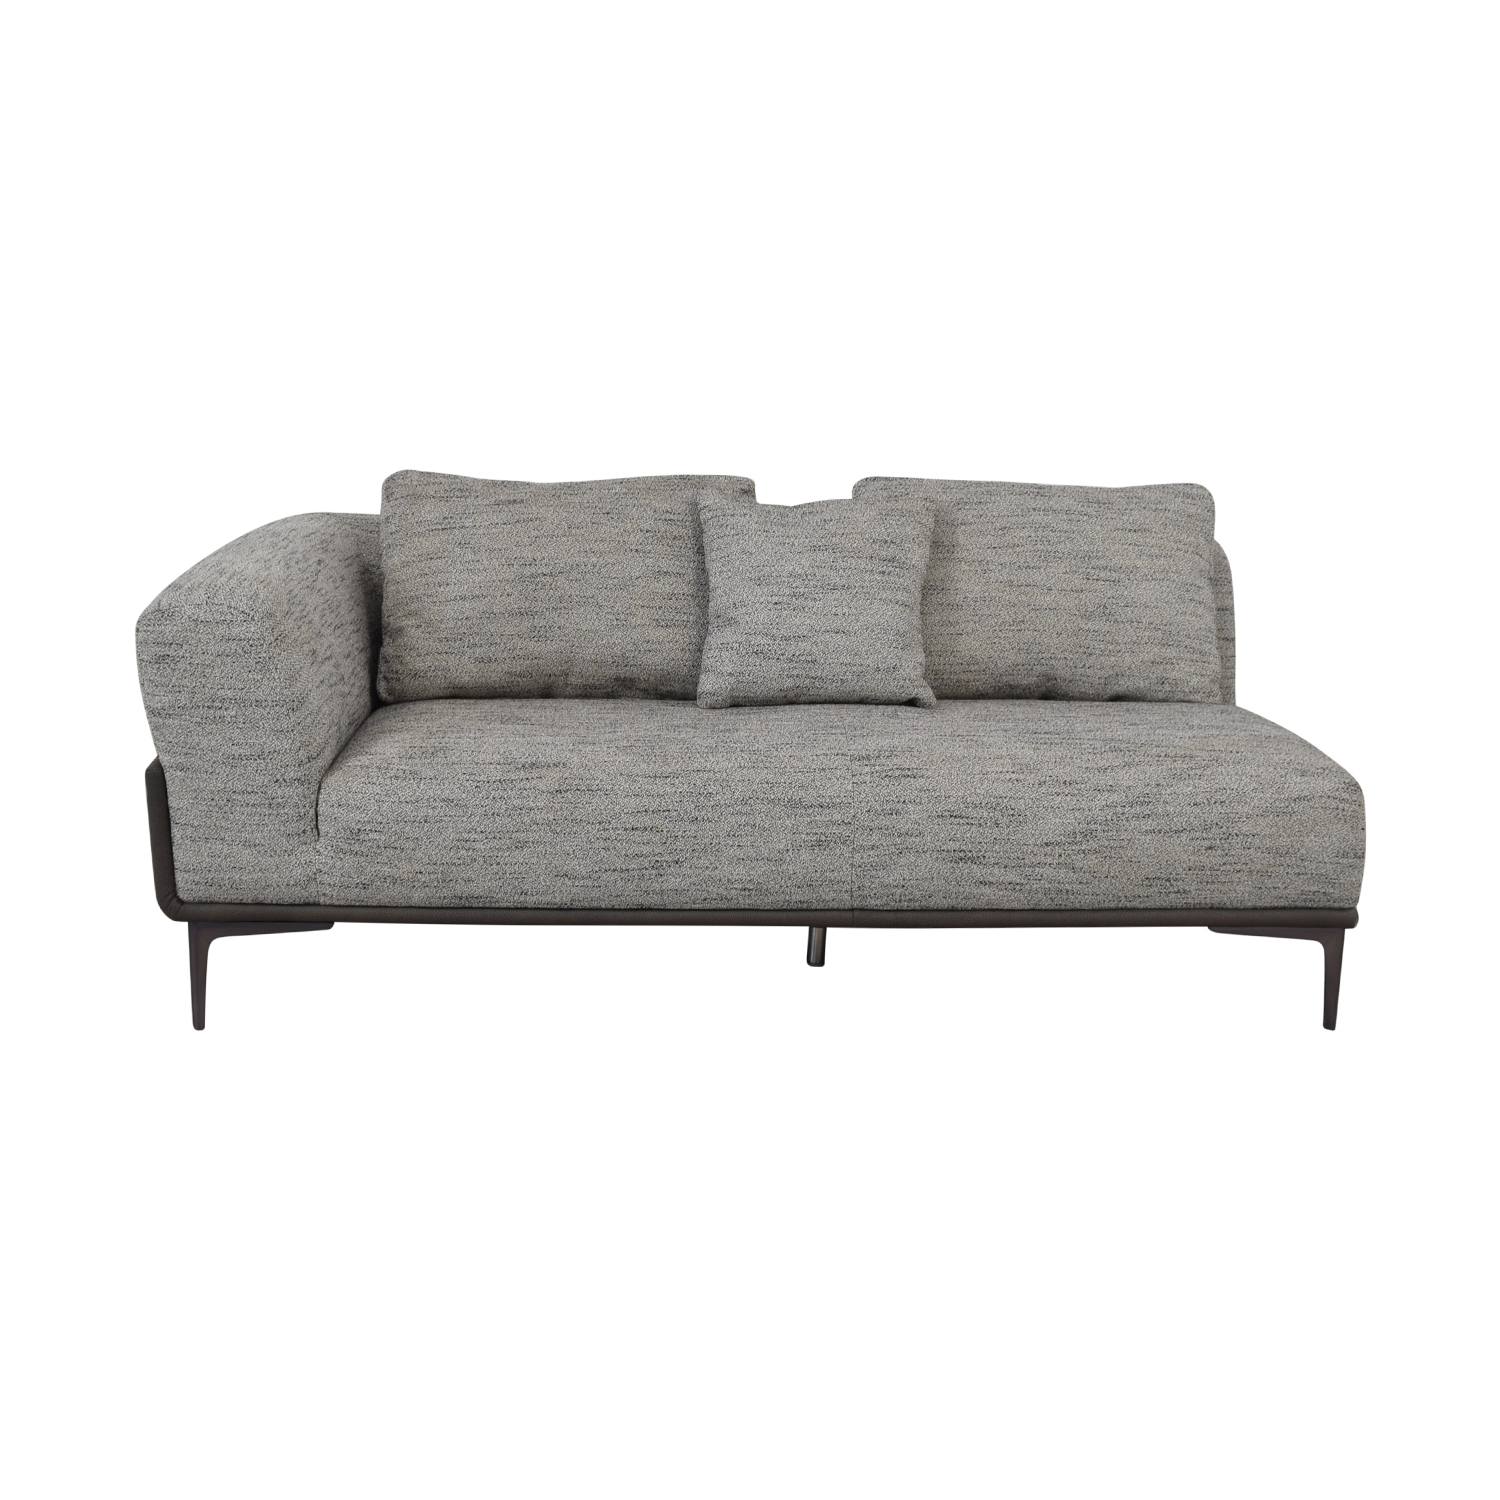 buy J&M Furniture J&M Furniture Luna Left Lounger online